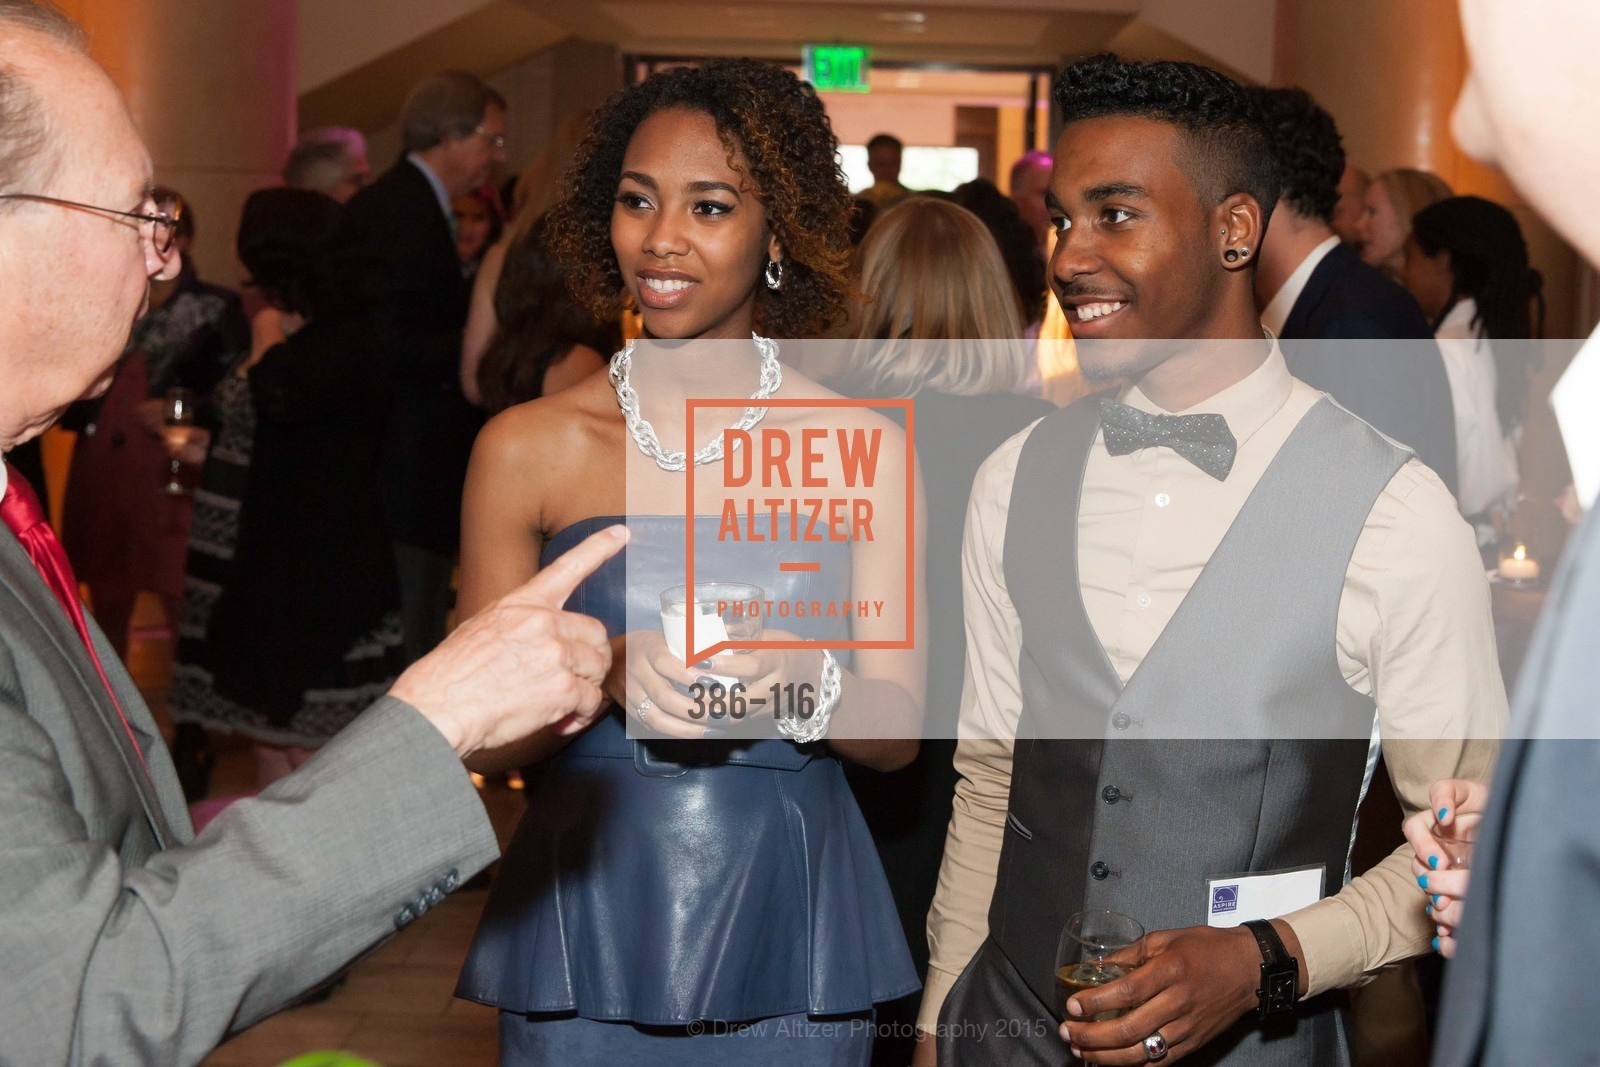 Shianne Davis, Xavier Taylor, Aspire Public Schools 2nd Annual Gala, Bently Reserve, May 20th, 2015,Drew Altizer, Drew Altizer Photography, full-service agency, private events, San Francisco photographer, photographer california